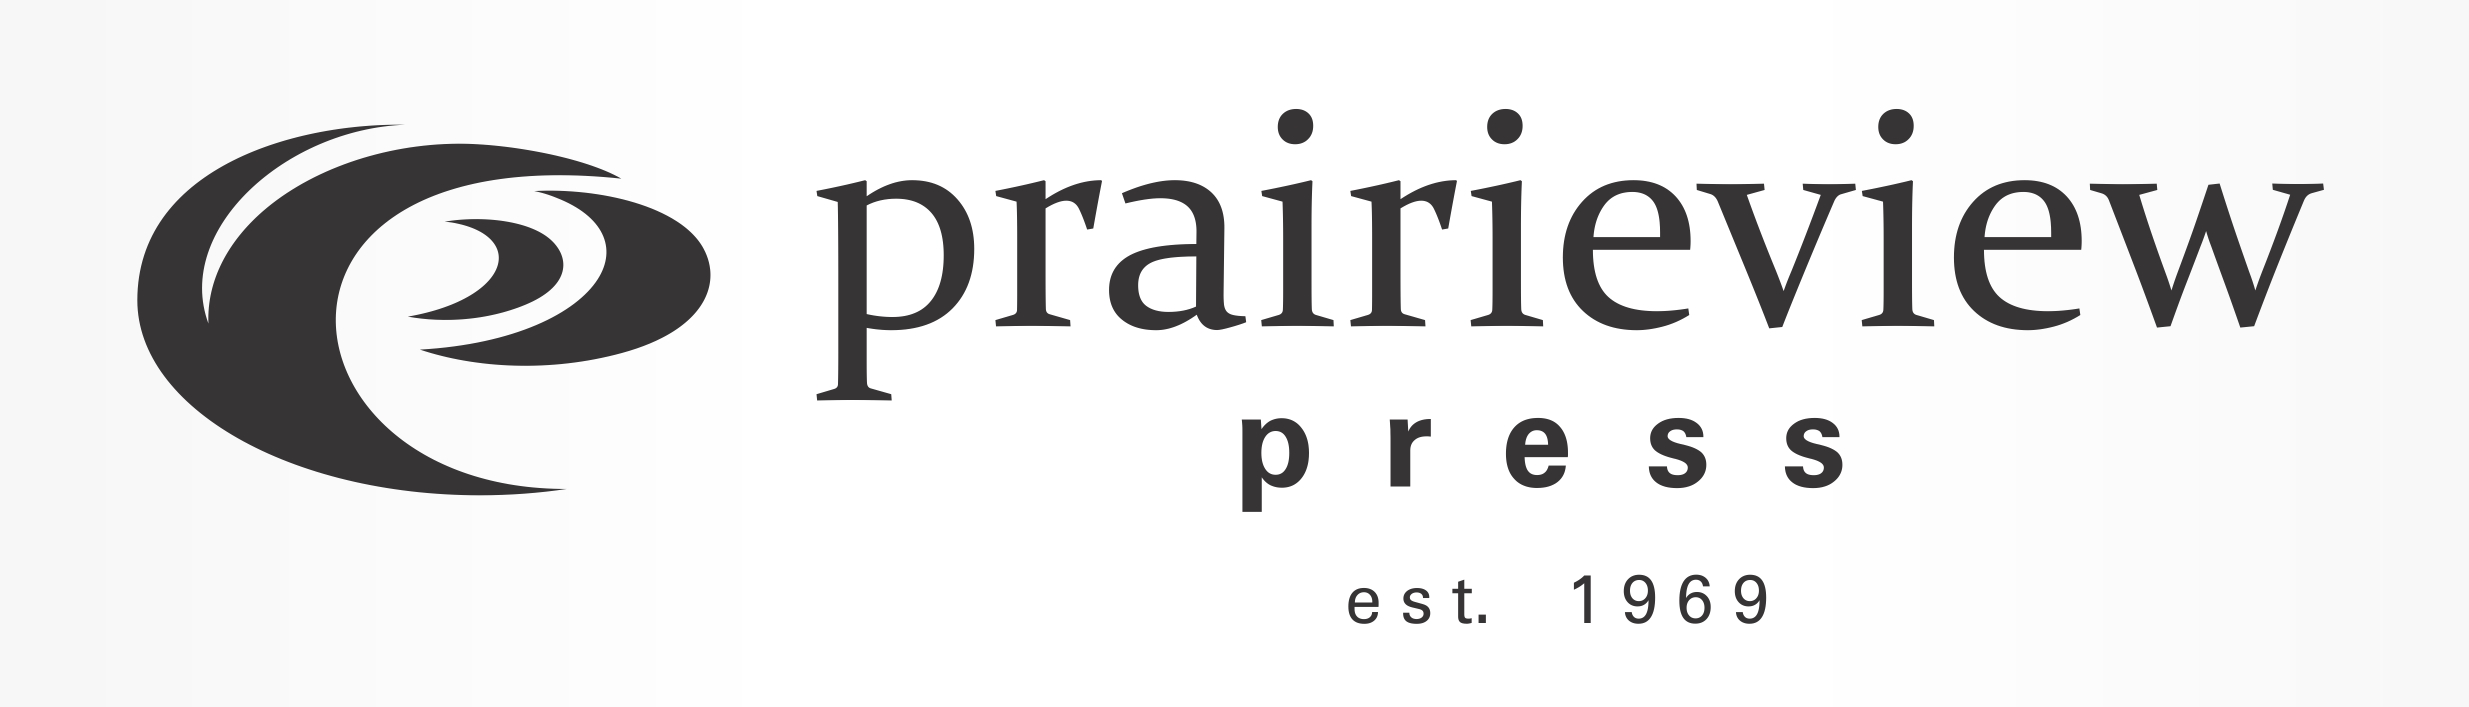 PrairieView Press